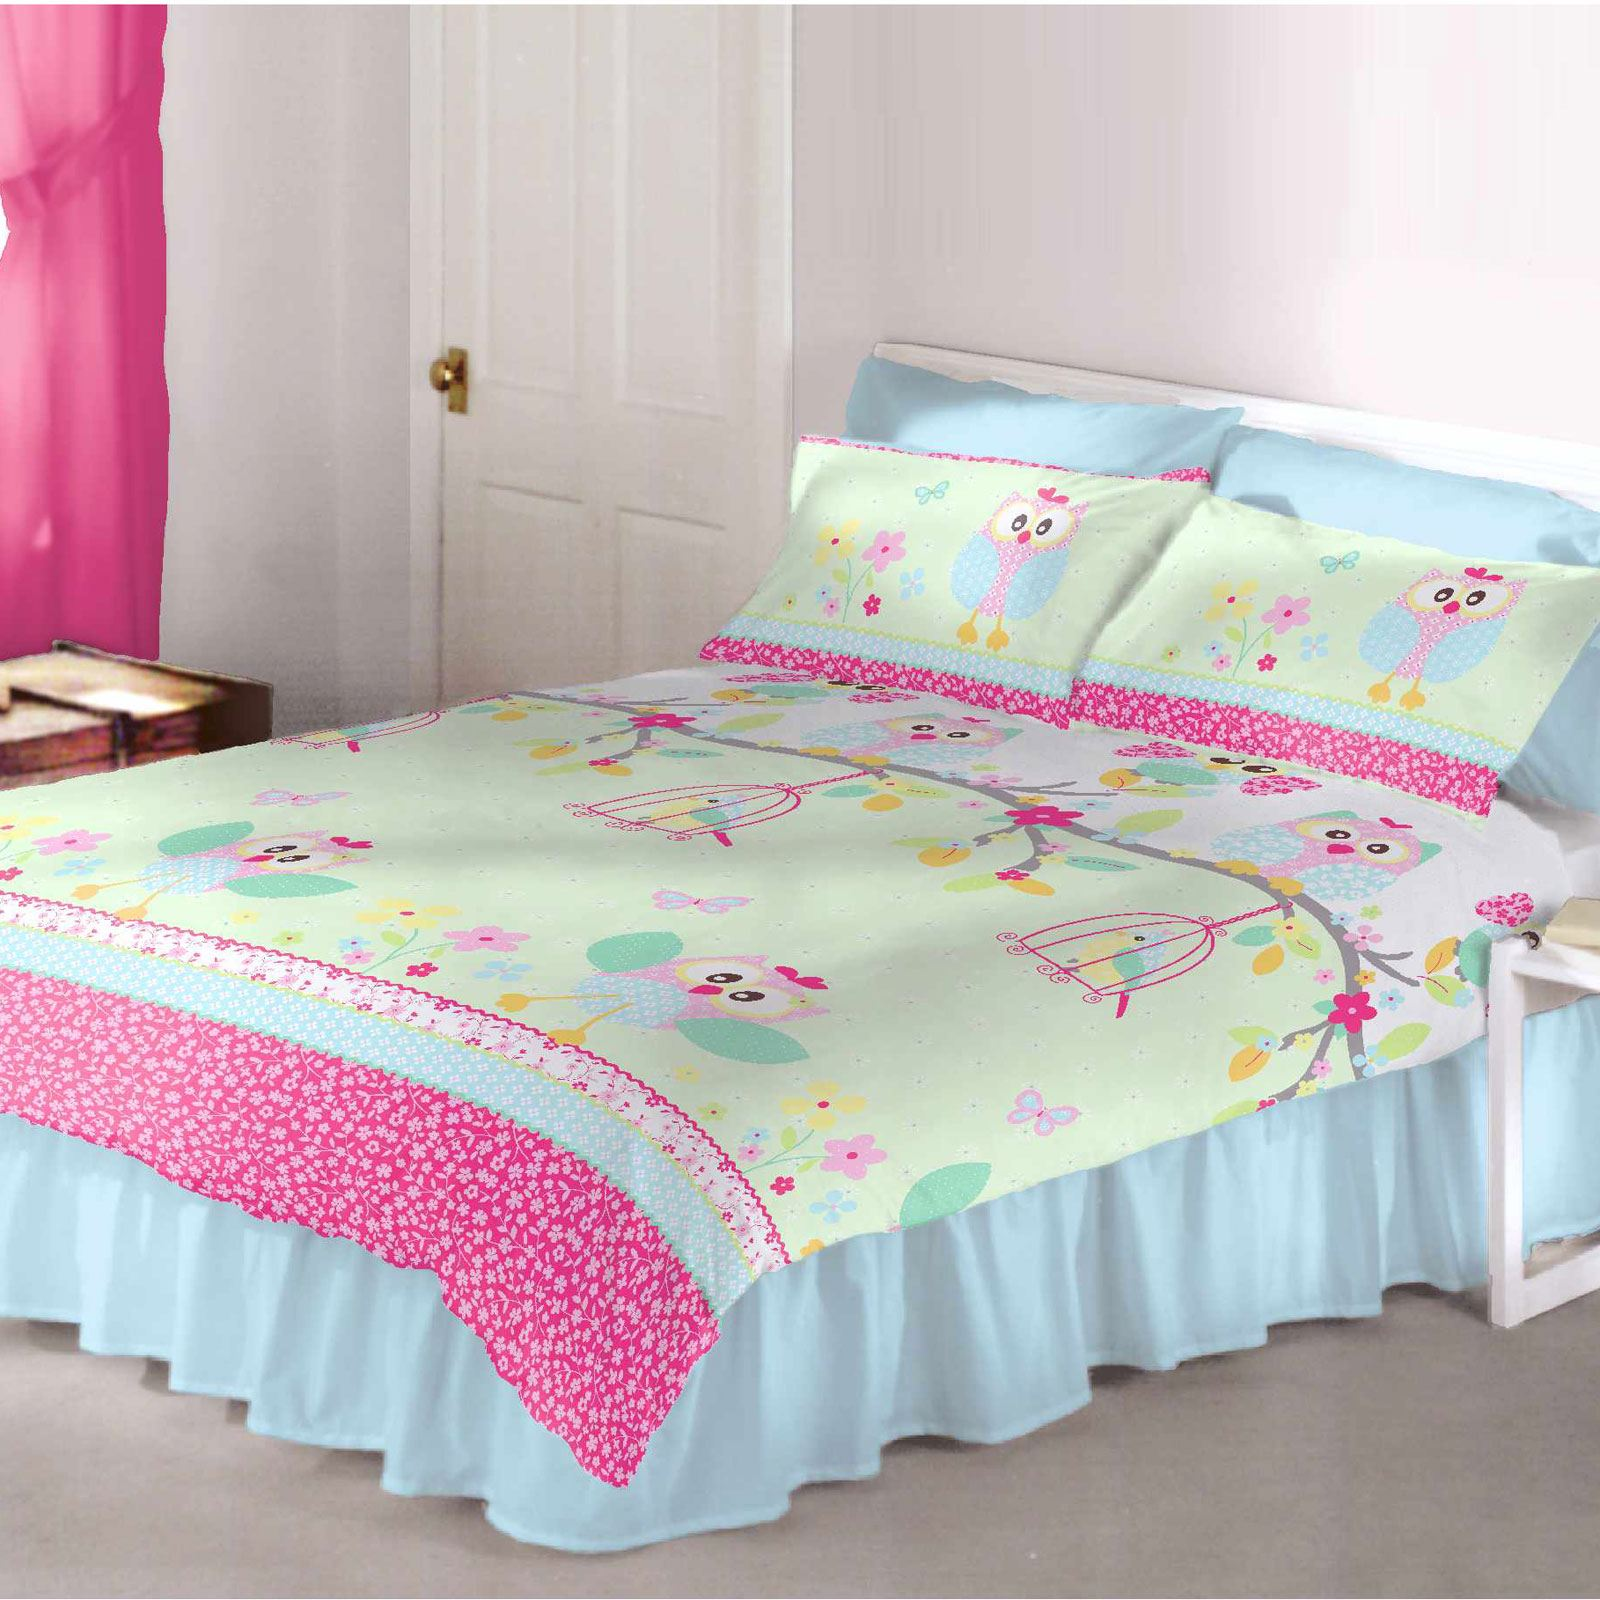 Bed sheets designs for girls - Exclusive Double Duvet Cover Sets Kids Designs Bedding